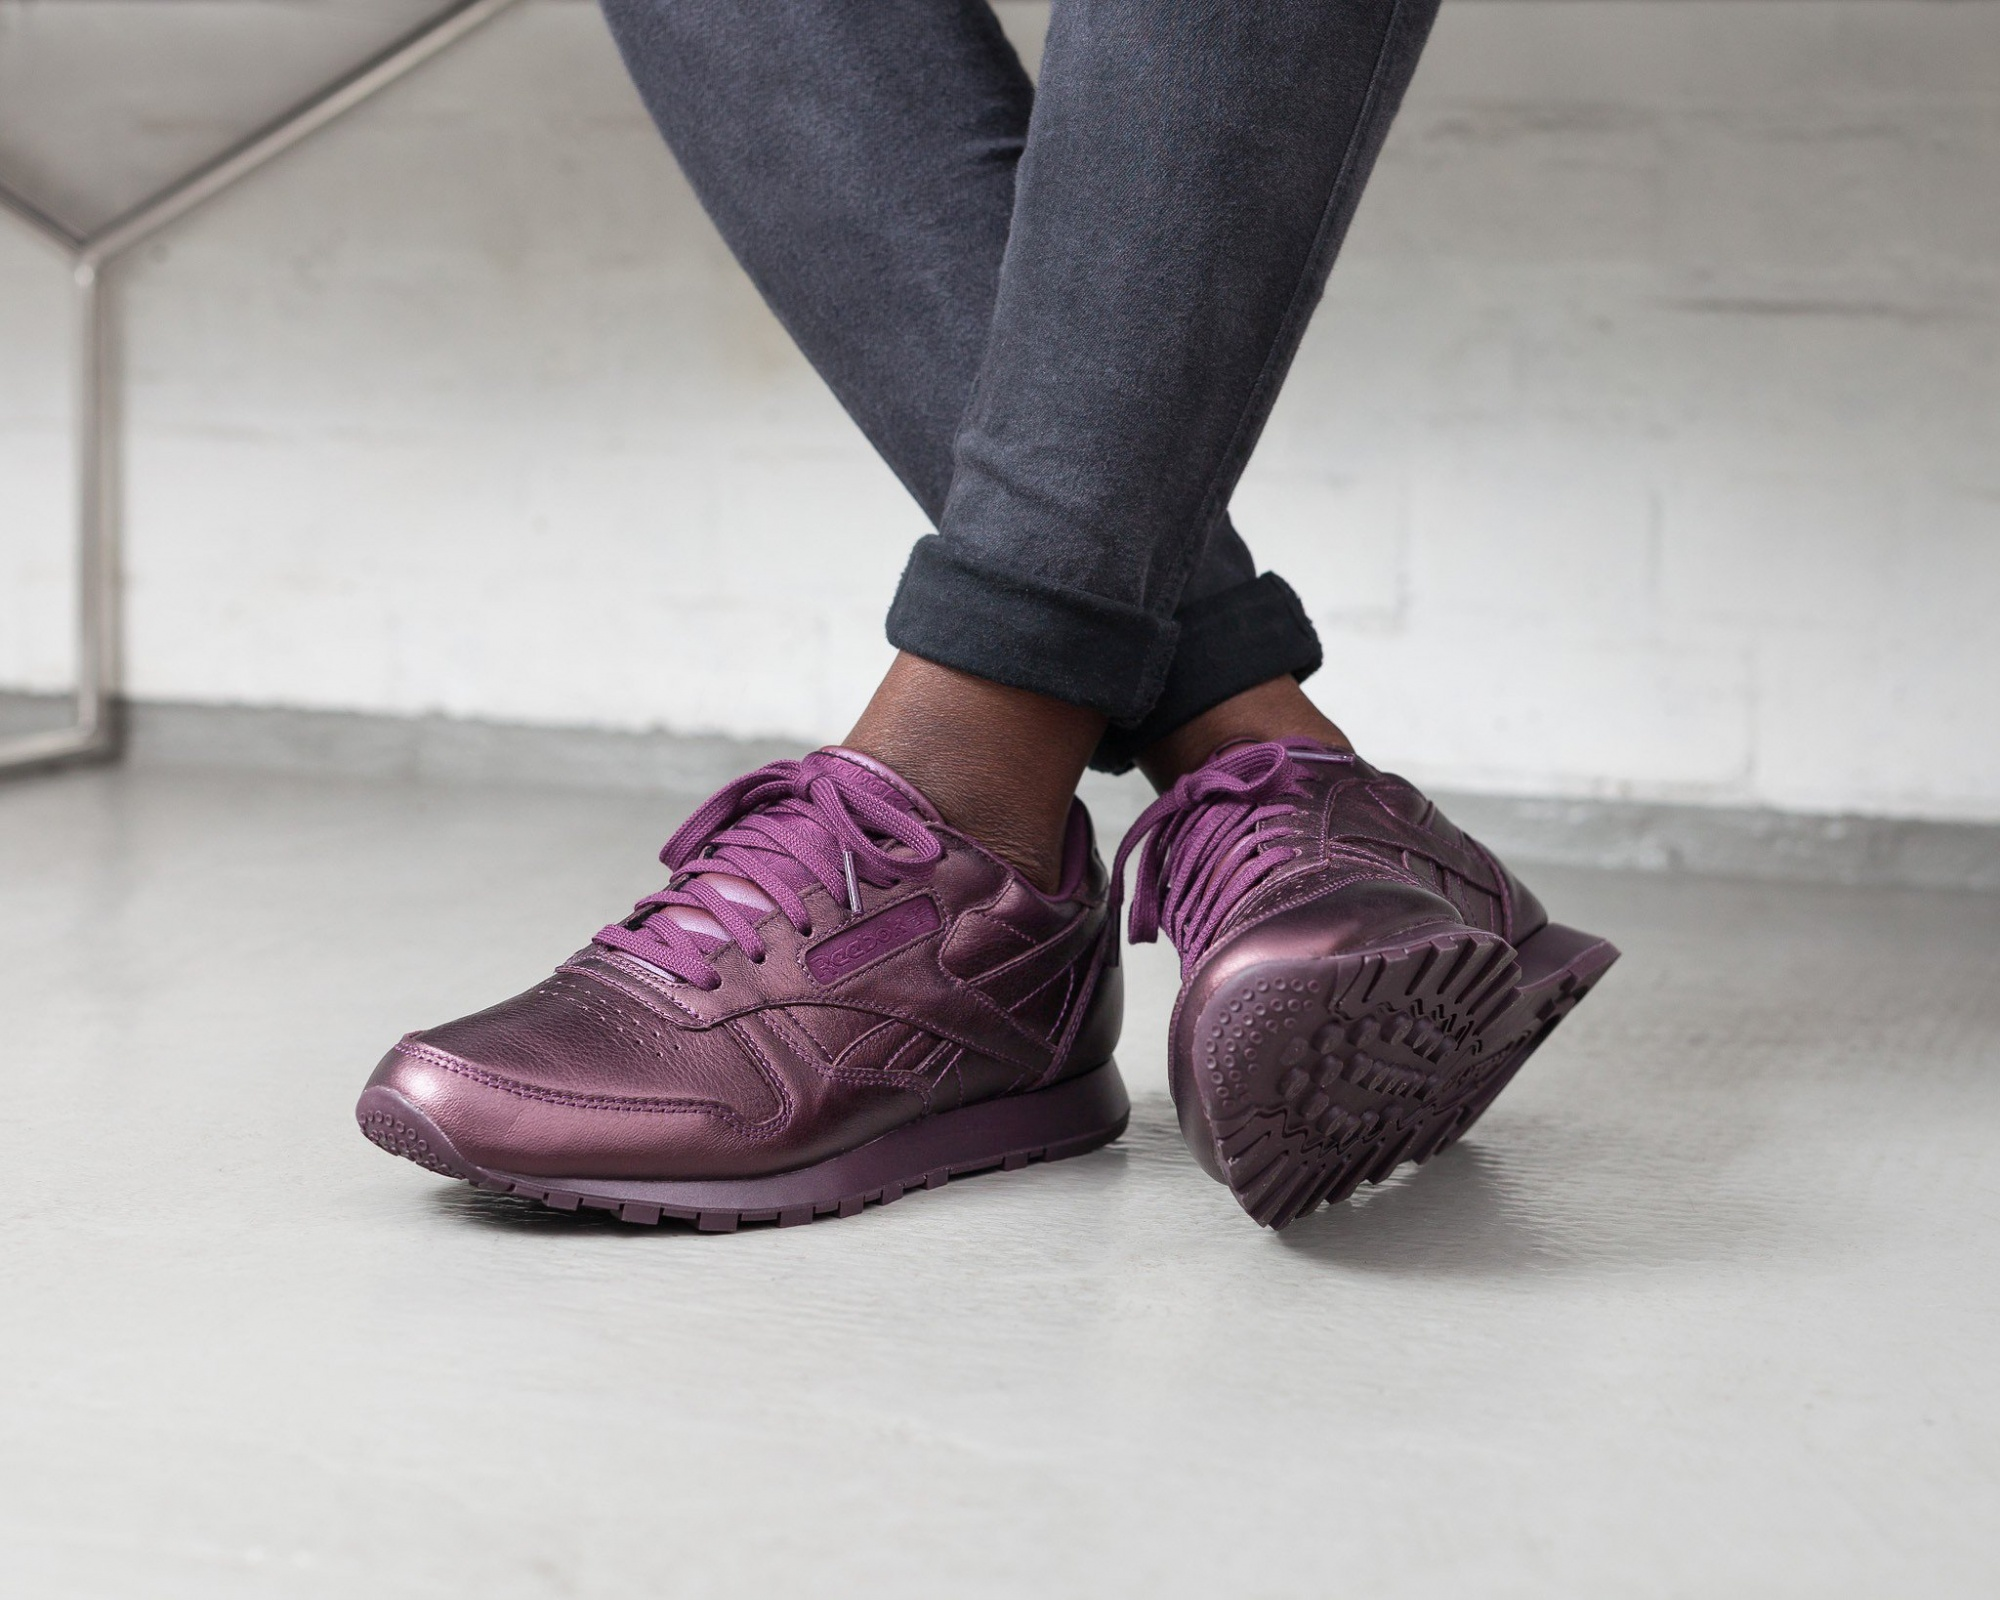 quite nice 7b598 c73ff ... Reebok Classic Leather Fashion sneakers ladies purple